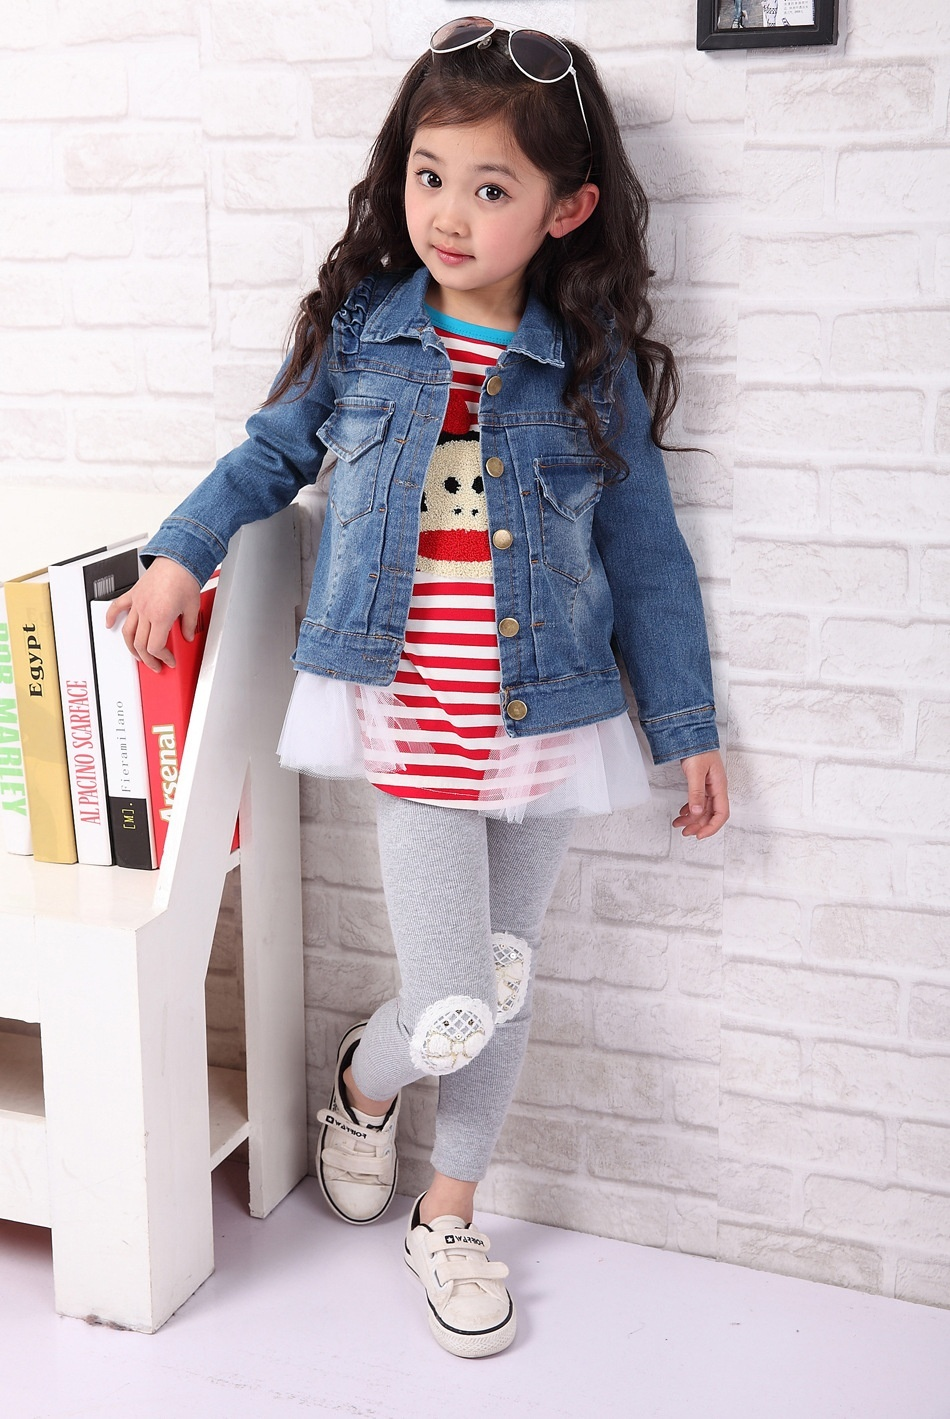 ba251c3b6 Where can I buy wholesale baby and kids designer clothes and shoes?